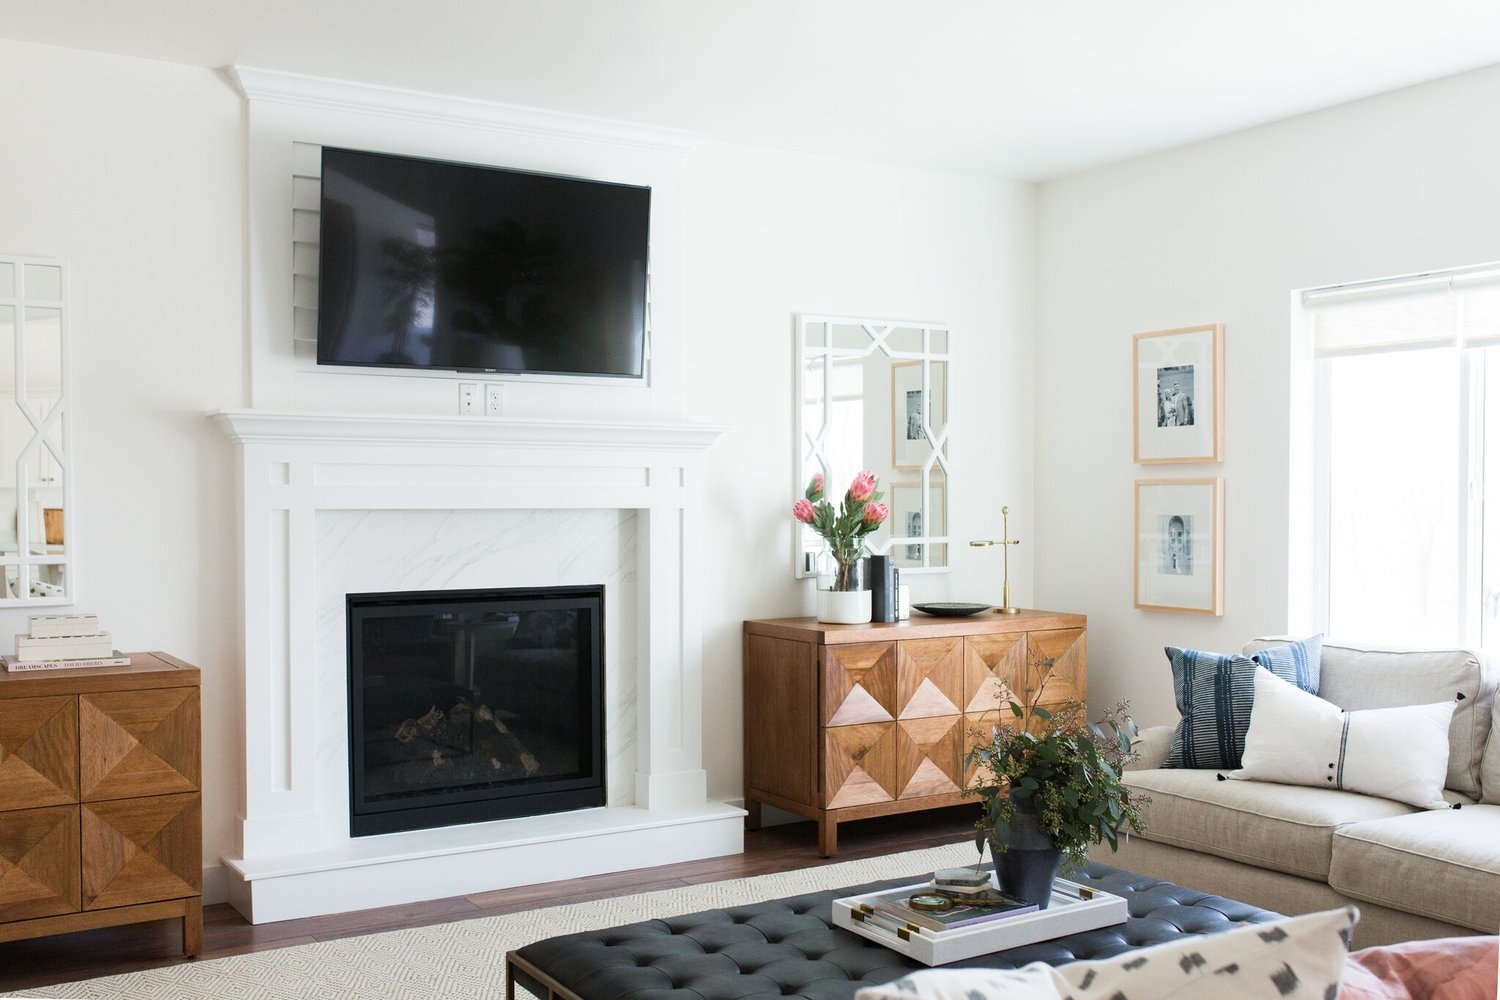 Flat screen TV mounted over fireplace